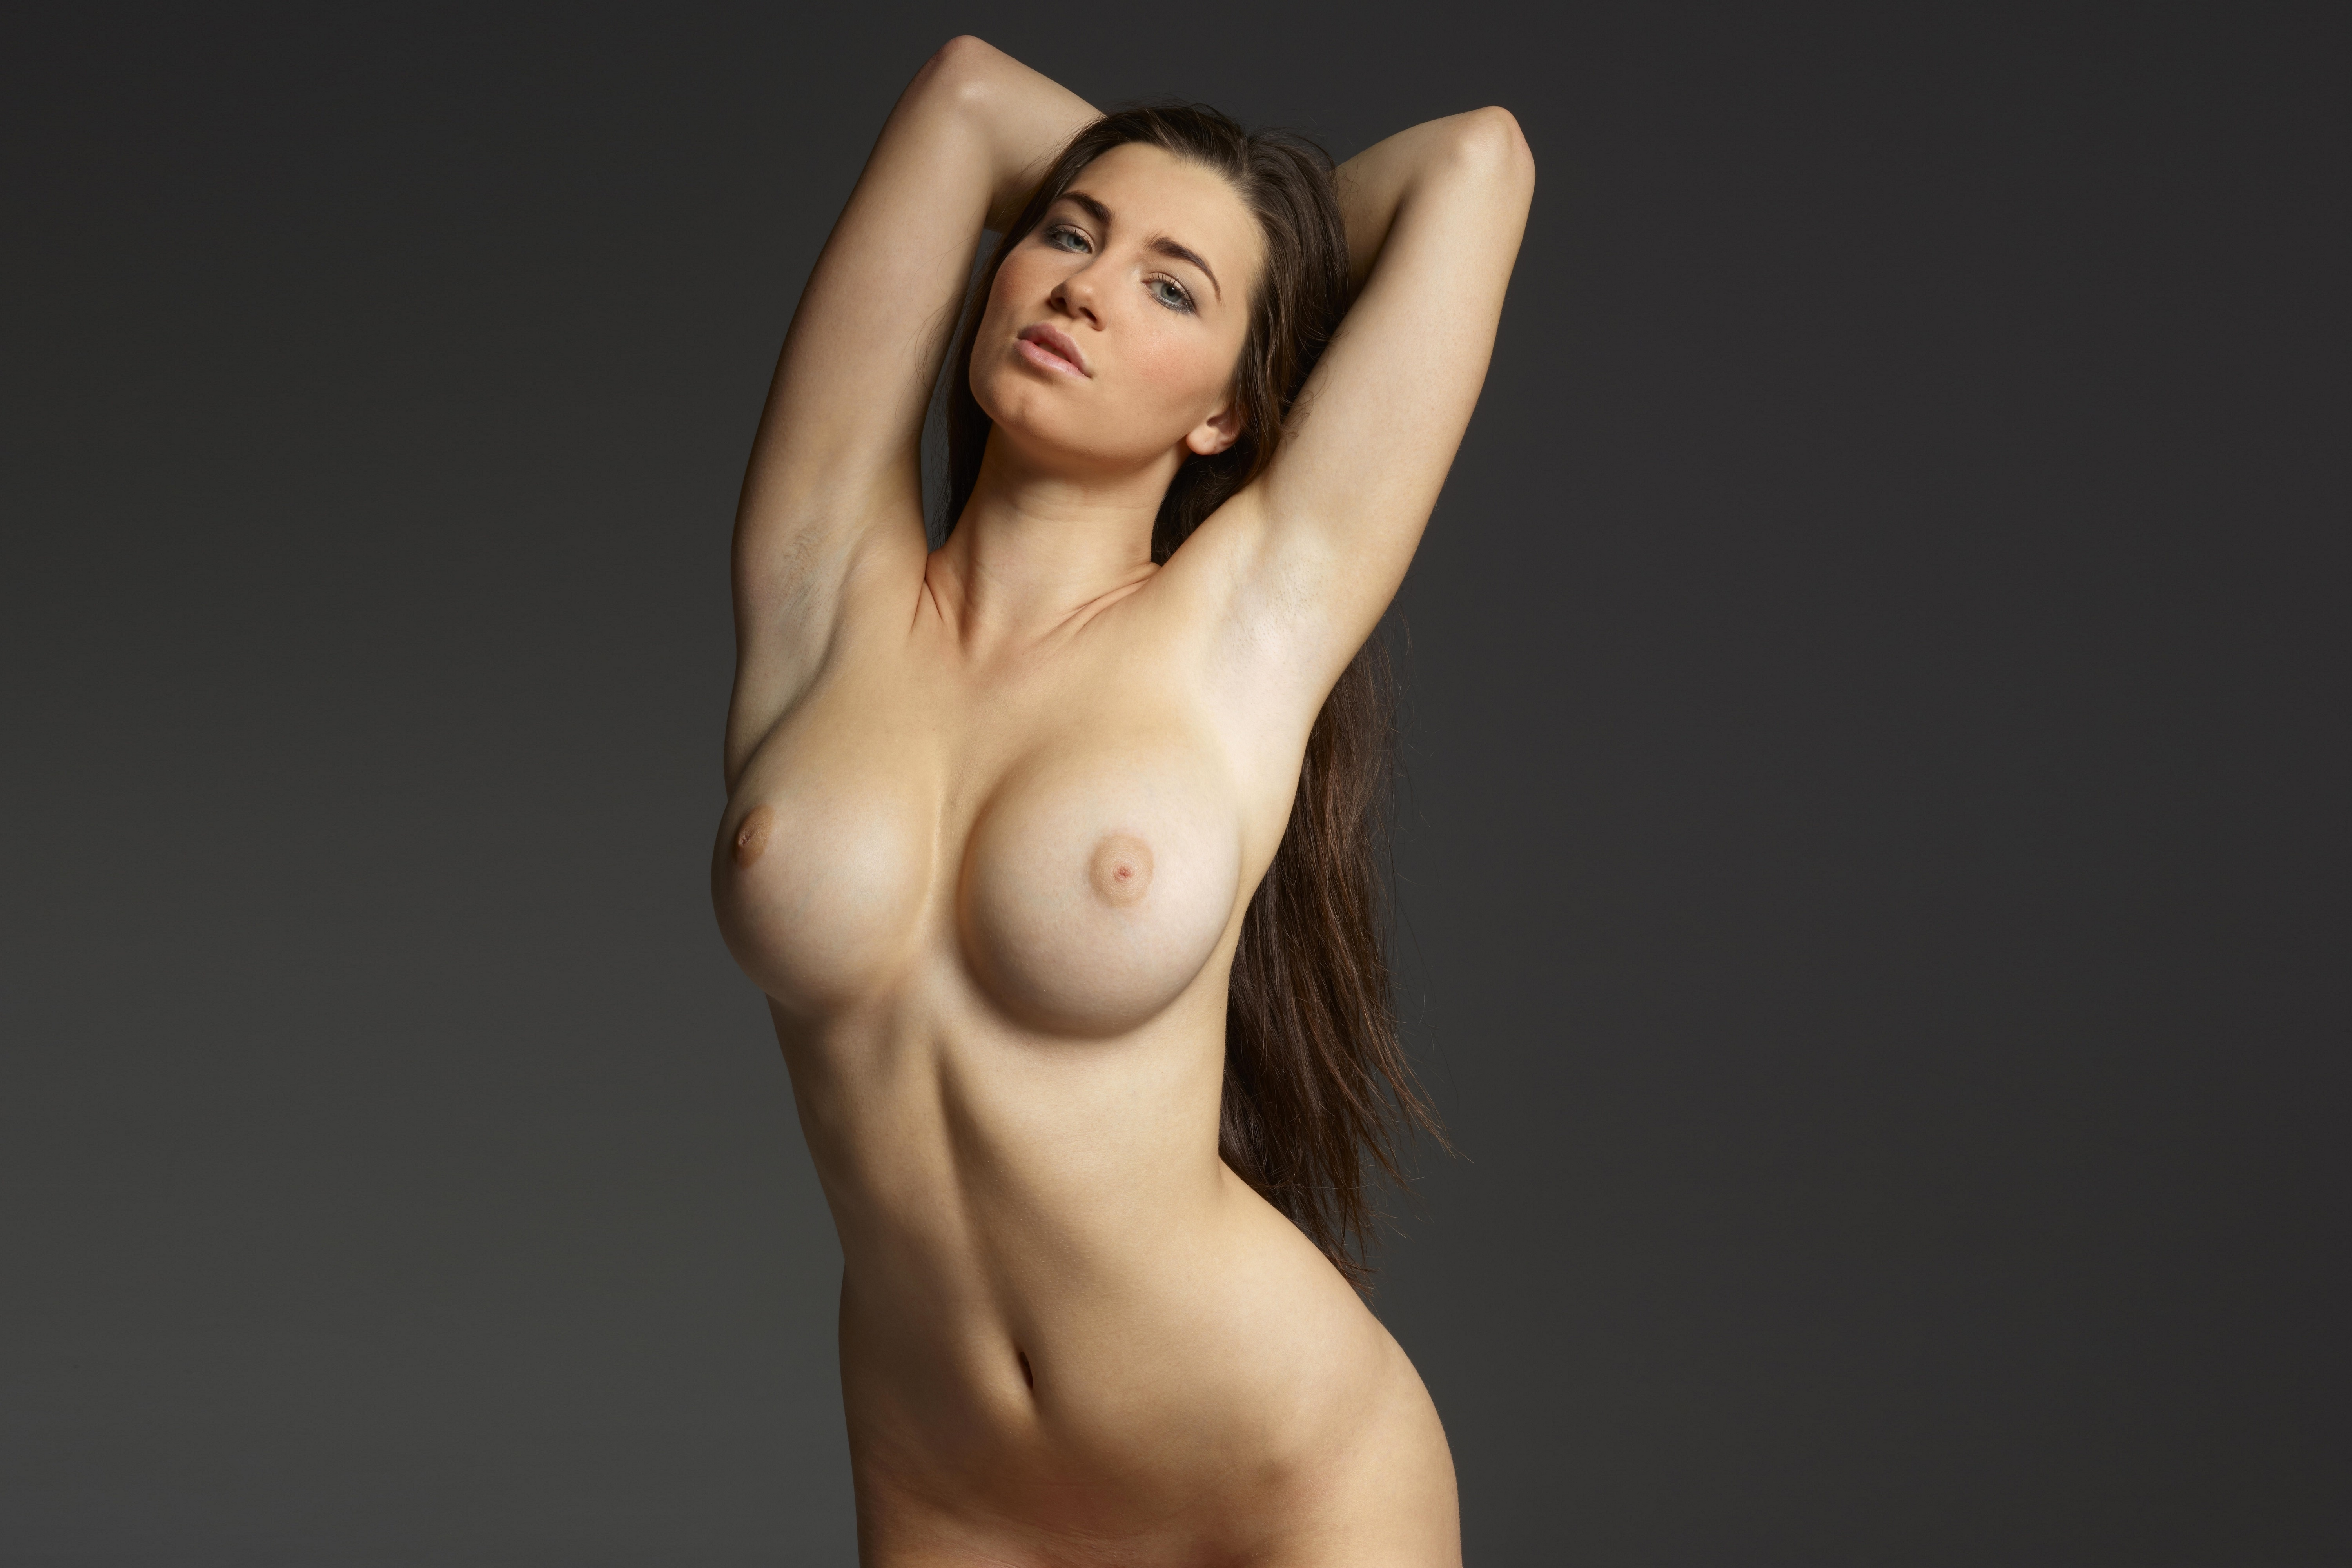 Naked photos of girl